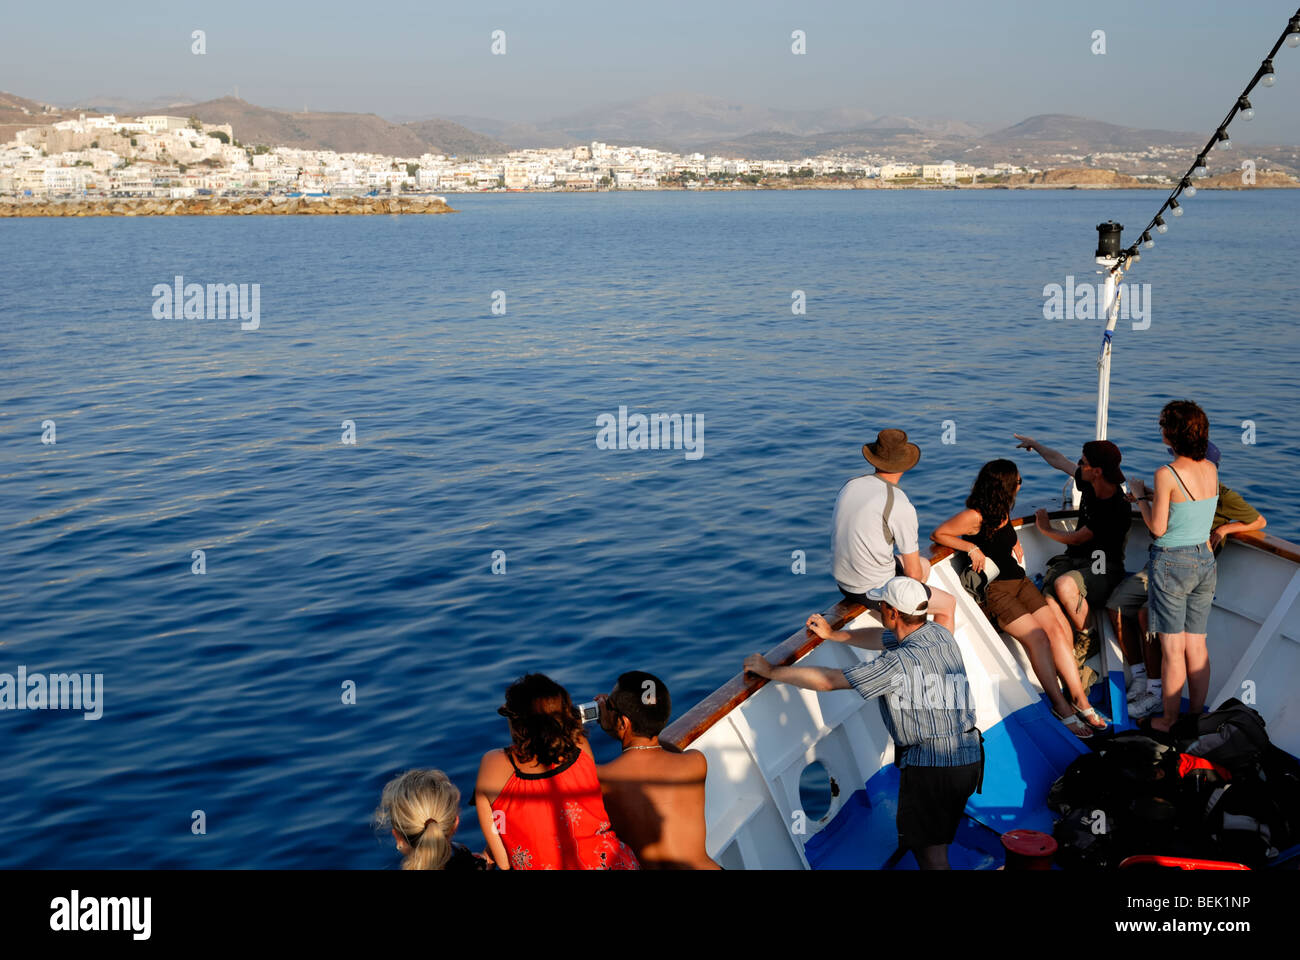 An excursion boat from Naousa, Paros Island, approach the harbour of Naxos town at the evening of a calm summer - Stock Image